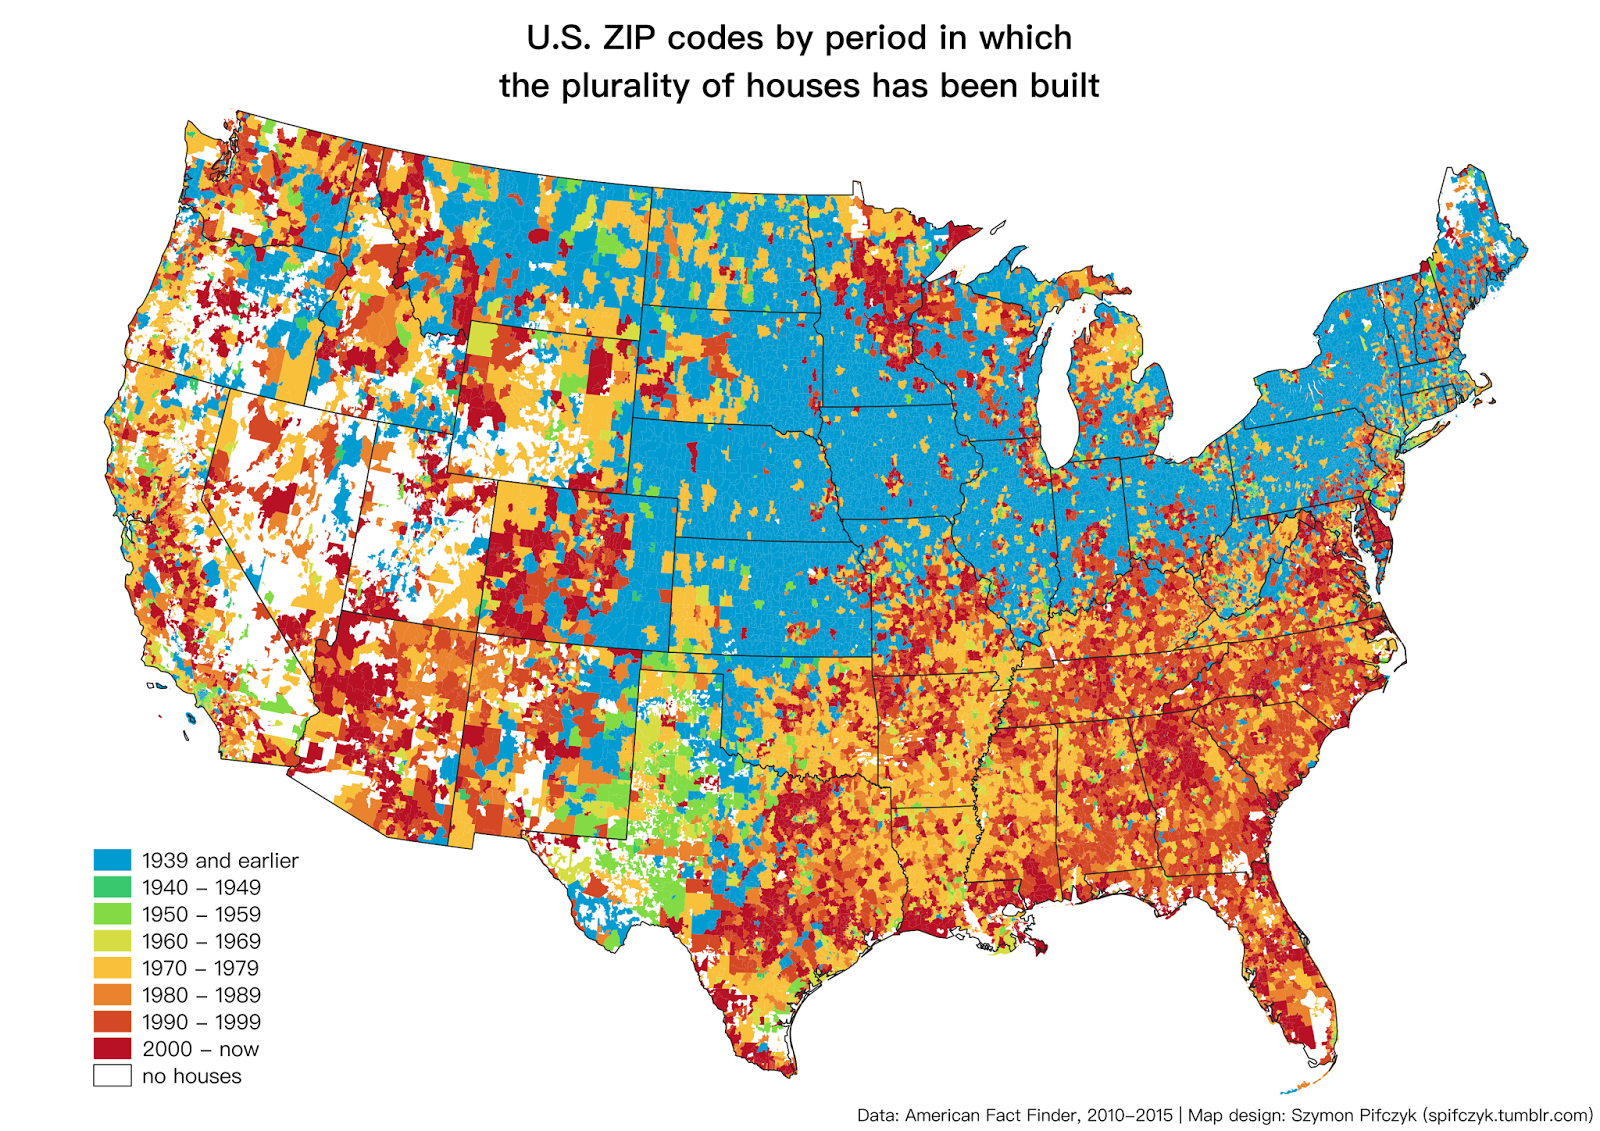 What Period Of Time Plurality Of Houses Were Built In The US By - Us zip code code